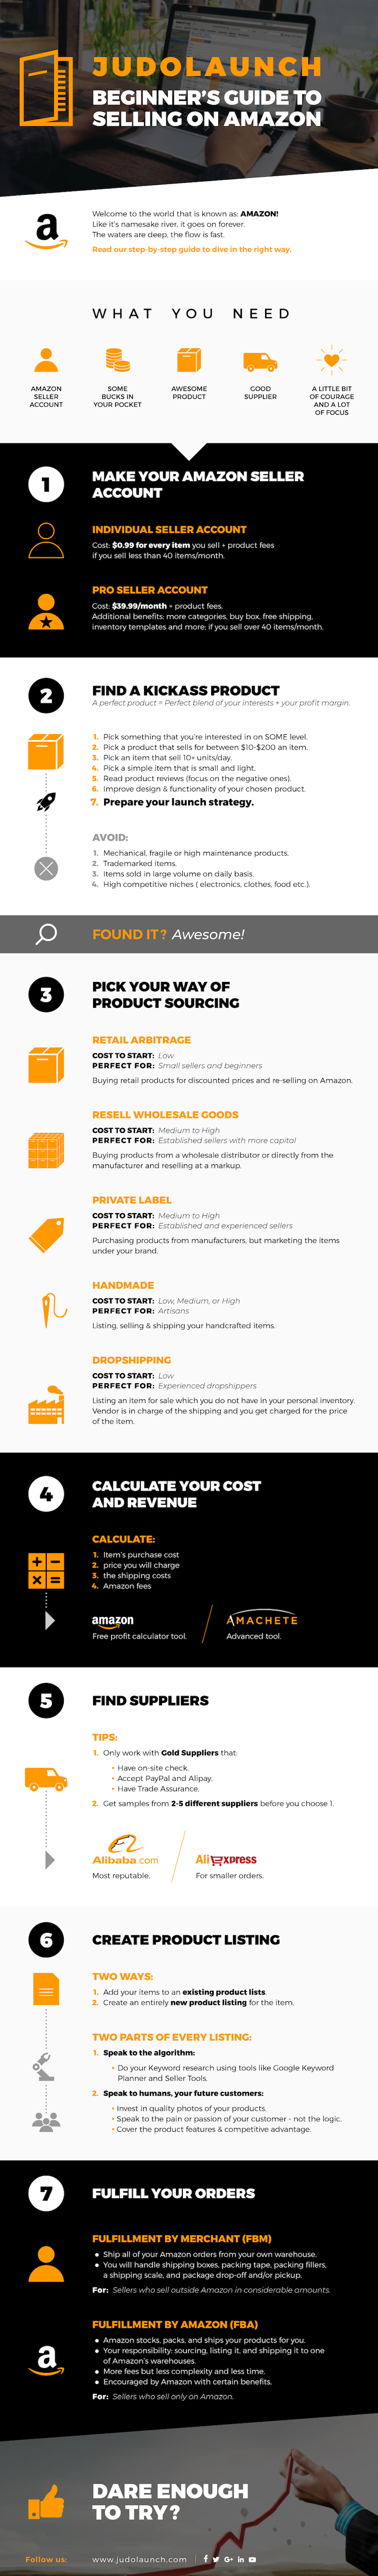 Infographic-How-To-Start-Selling-On-Amazon